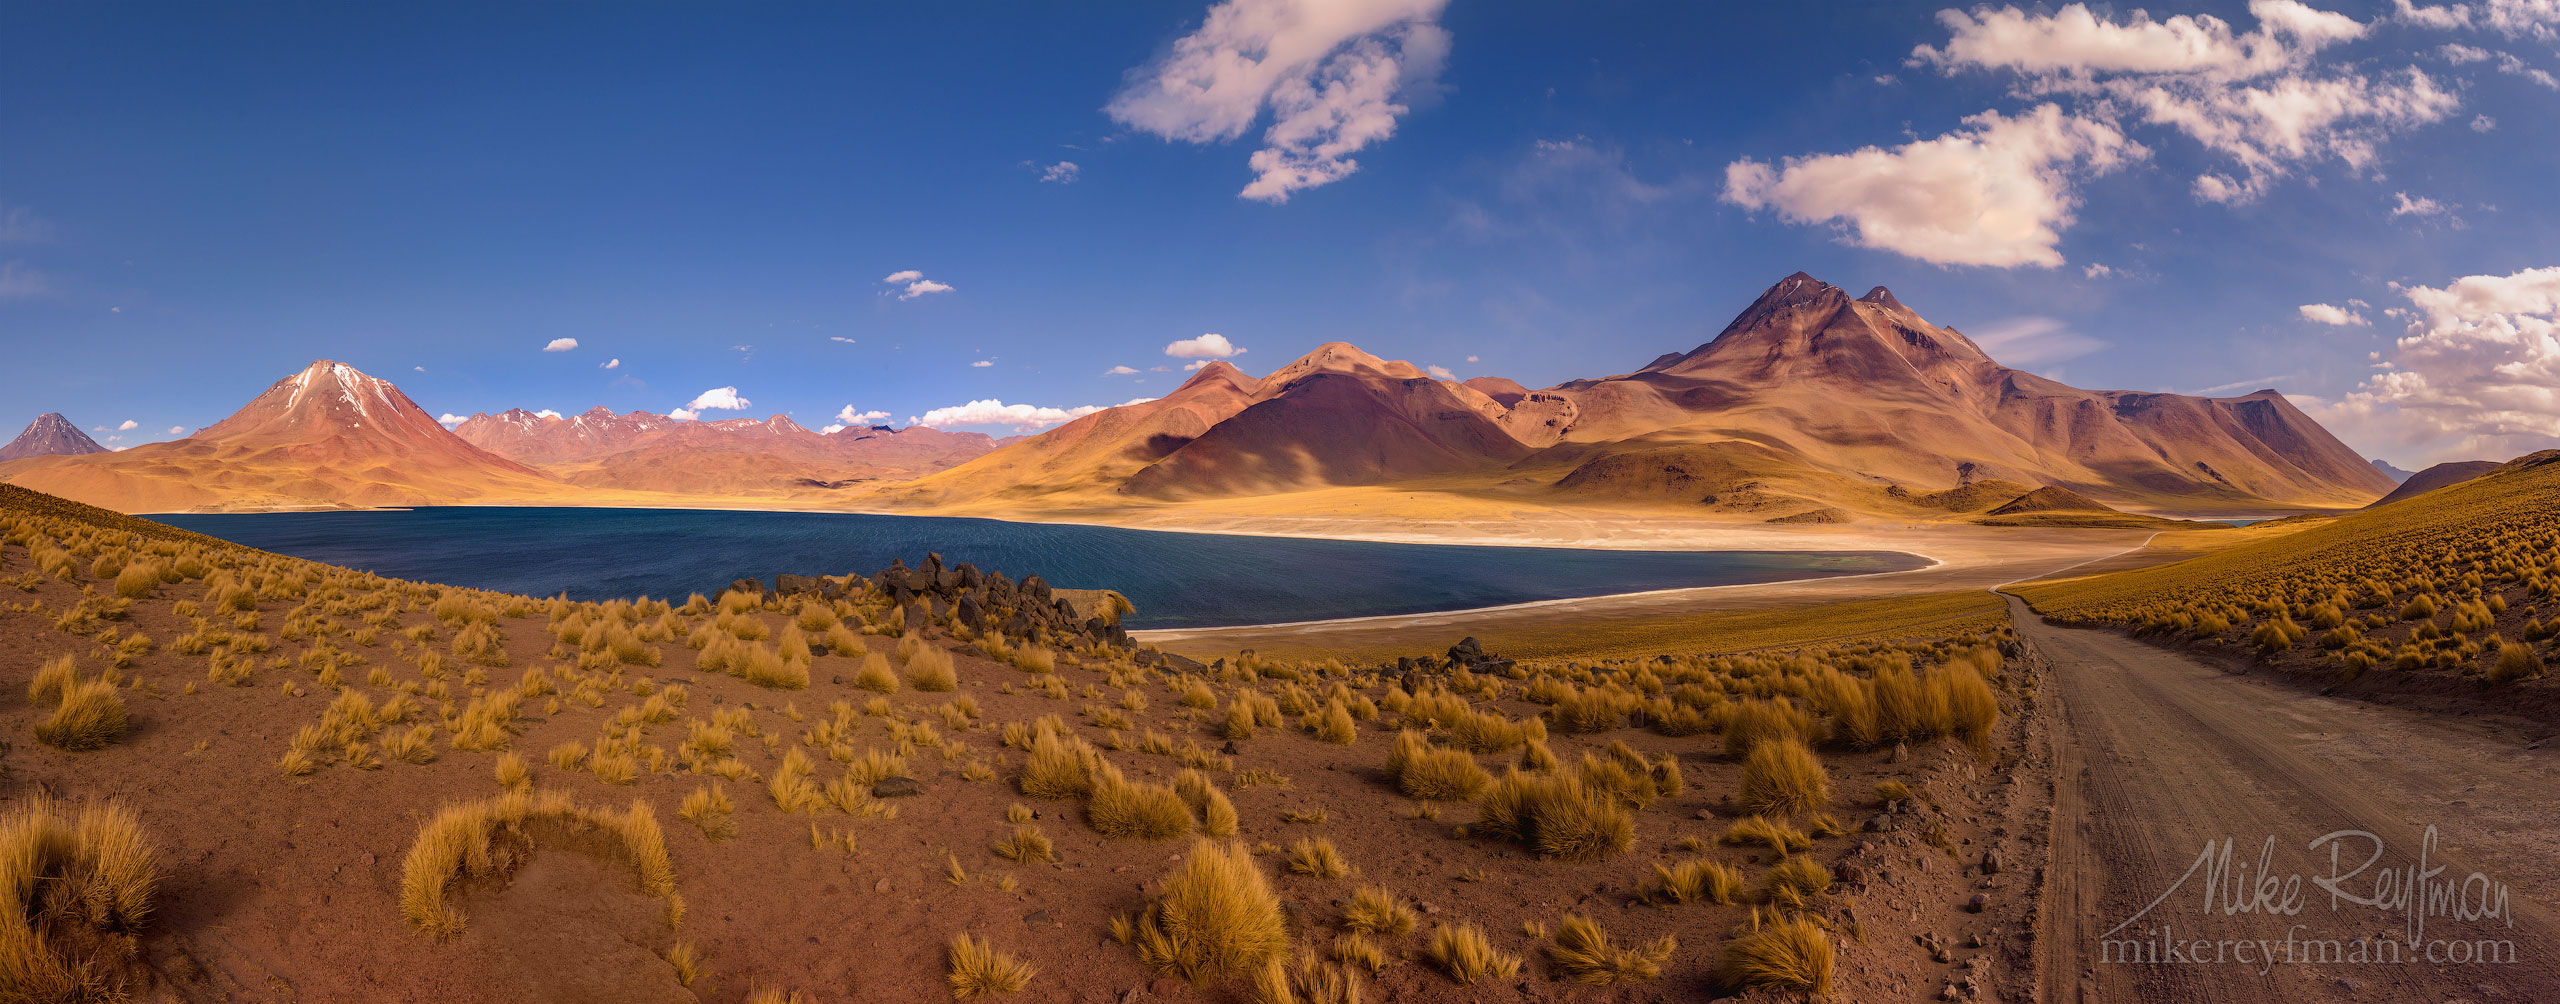 Laguna and volcano Miñiques. San Pedro de Atacama, Atacama Desert, Antofagasta Region, Chile AA1-D1D9624_Pano_1x2.55 - Atacama and Altiplano. The Driest Desert and The High Plain - Mike Reyfman Photography